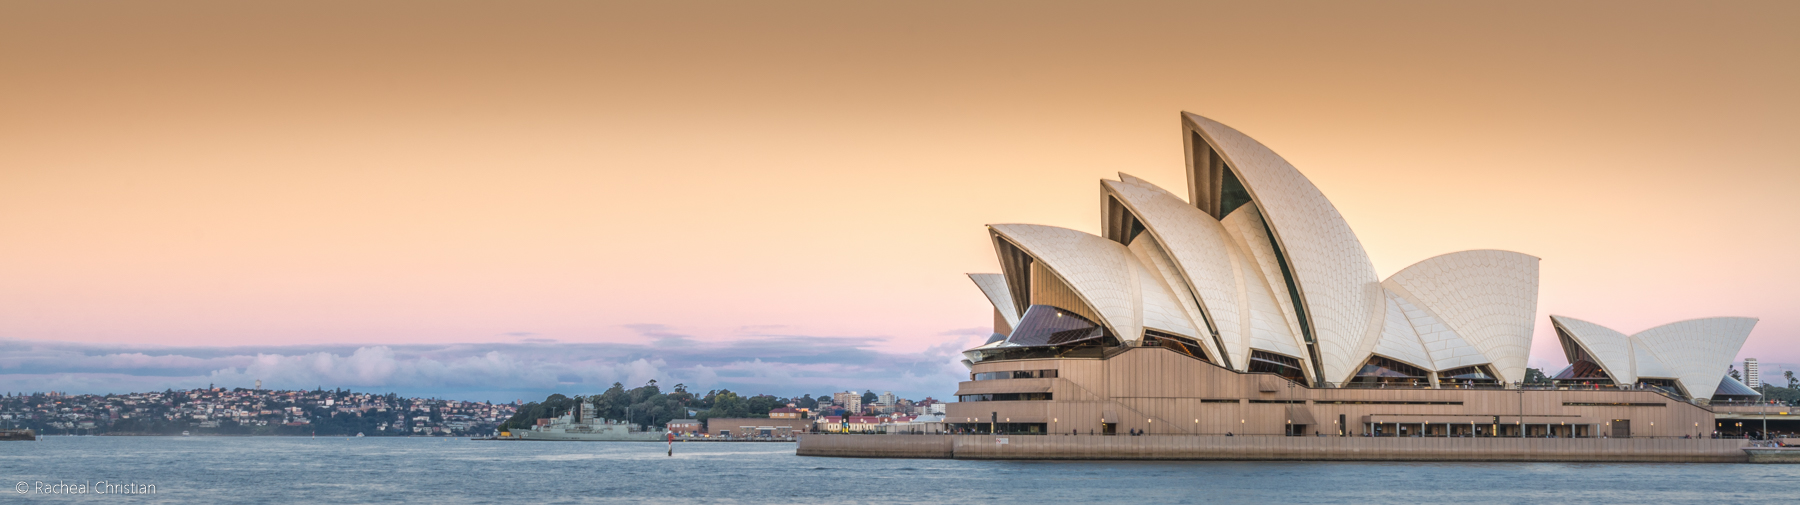 Photographing Sydney   A Night At The Rocks by Racheal Christian - Sydney Opera House Panorama